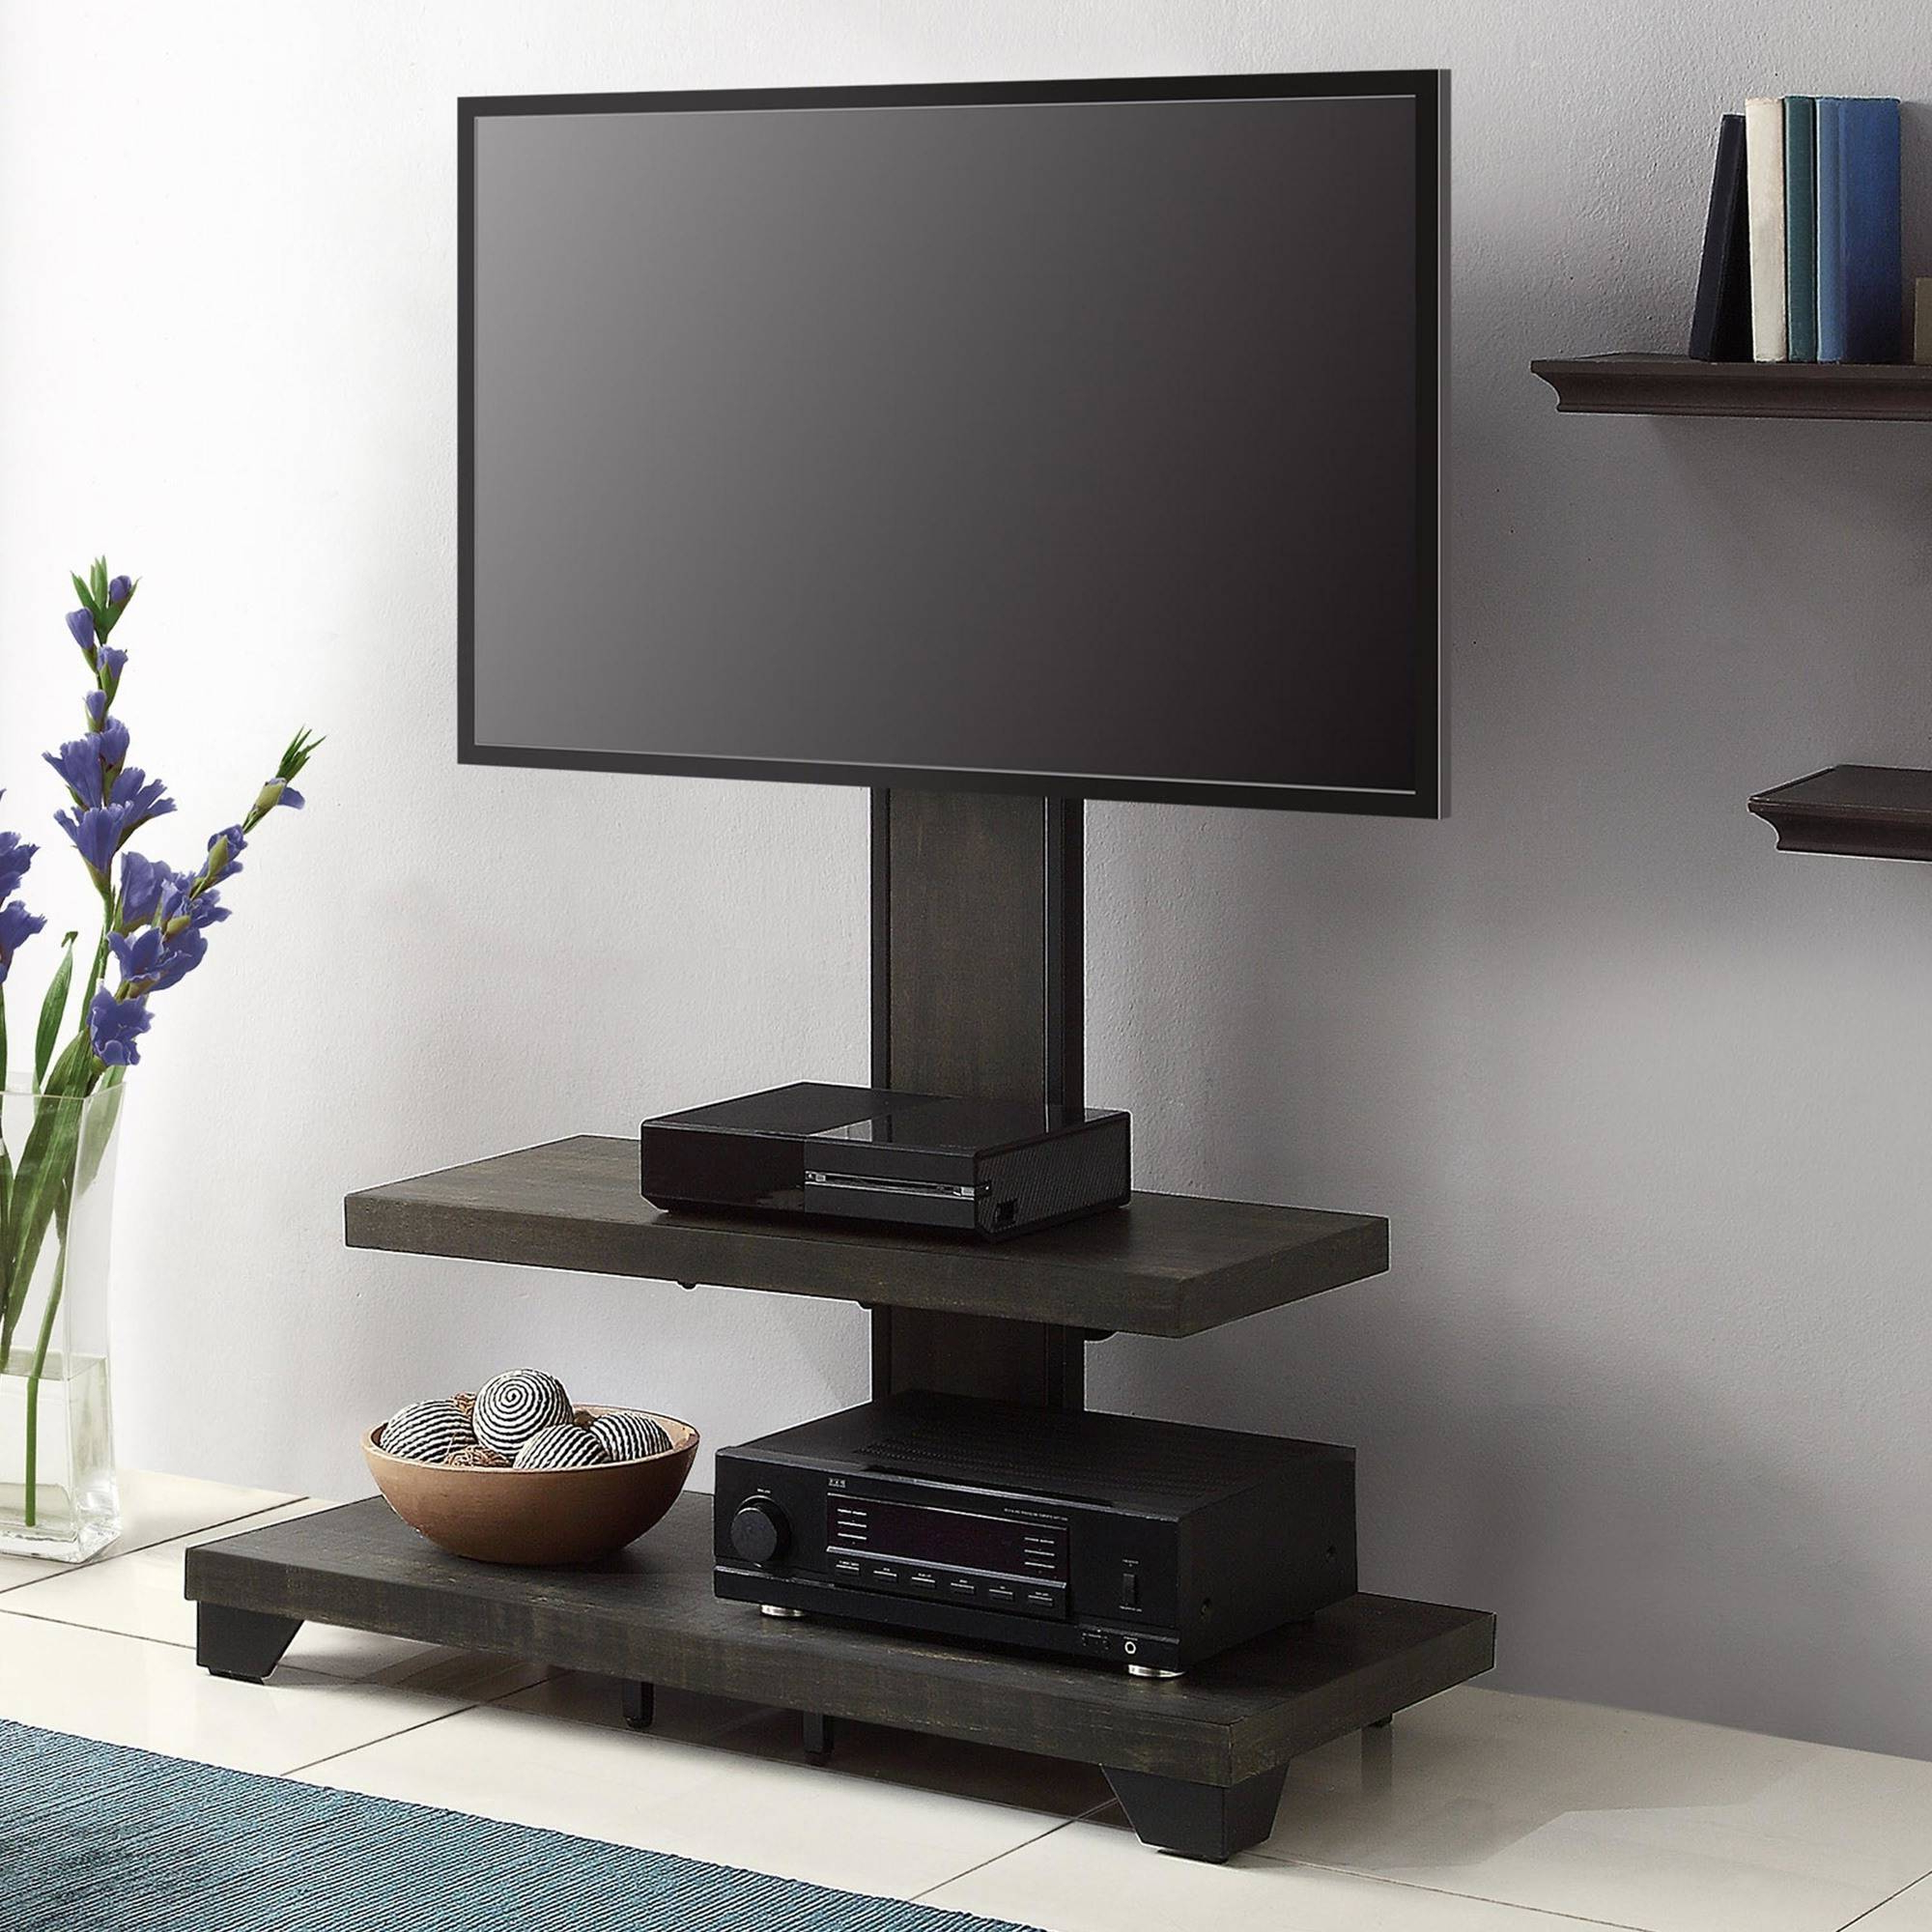 Tv Stand With Mount Swivel Fitueyes Floor For 32 60 Inches Best Regarding Vista 60 Inch Tv Stands (View 17 of 20)